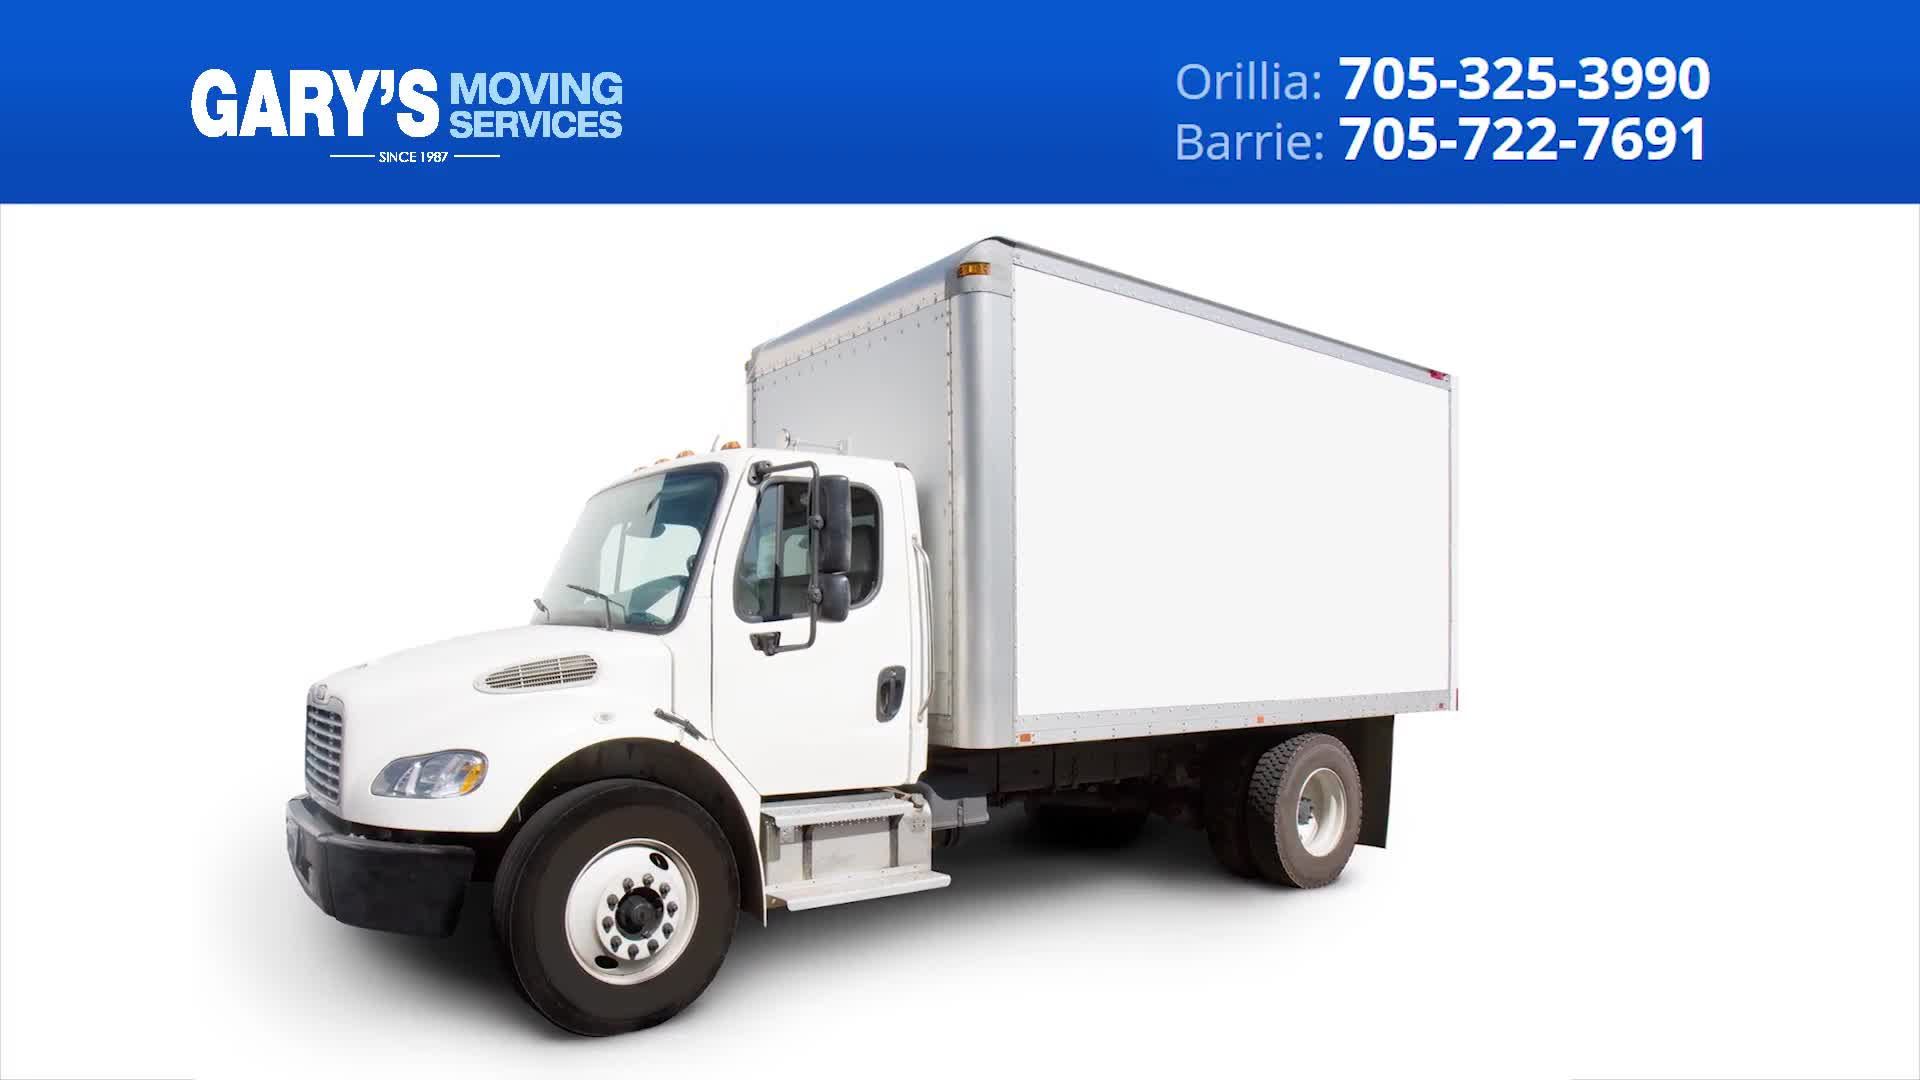 Gary's Moving Services - Self-Storage - 705-325-3990